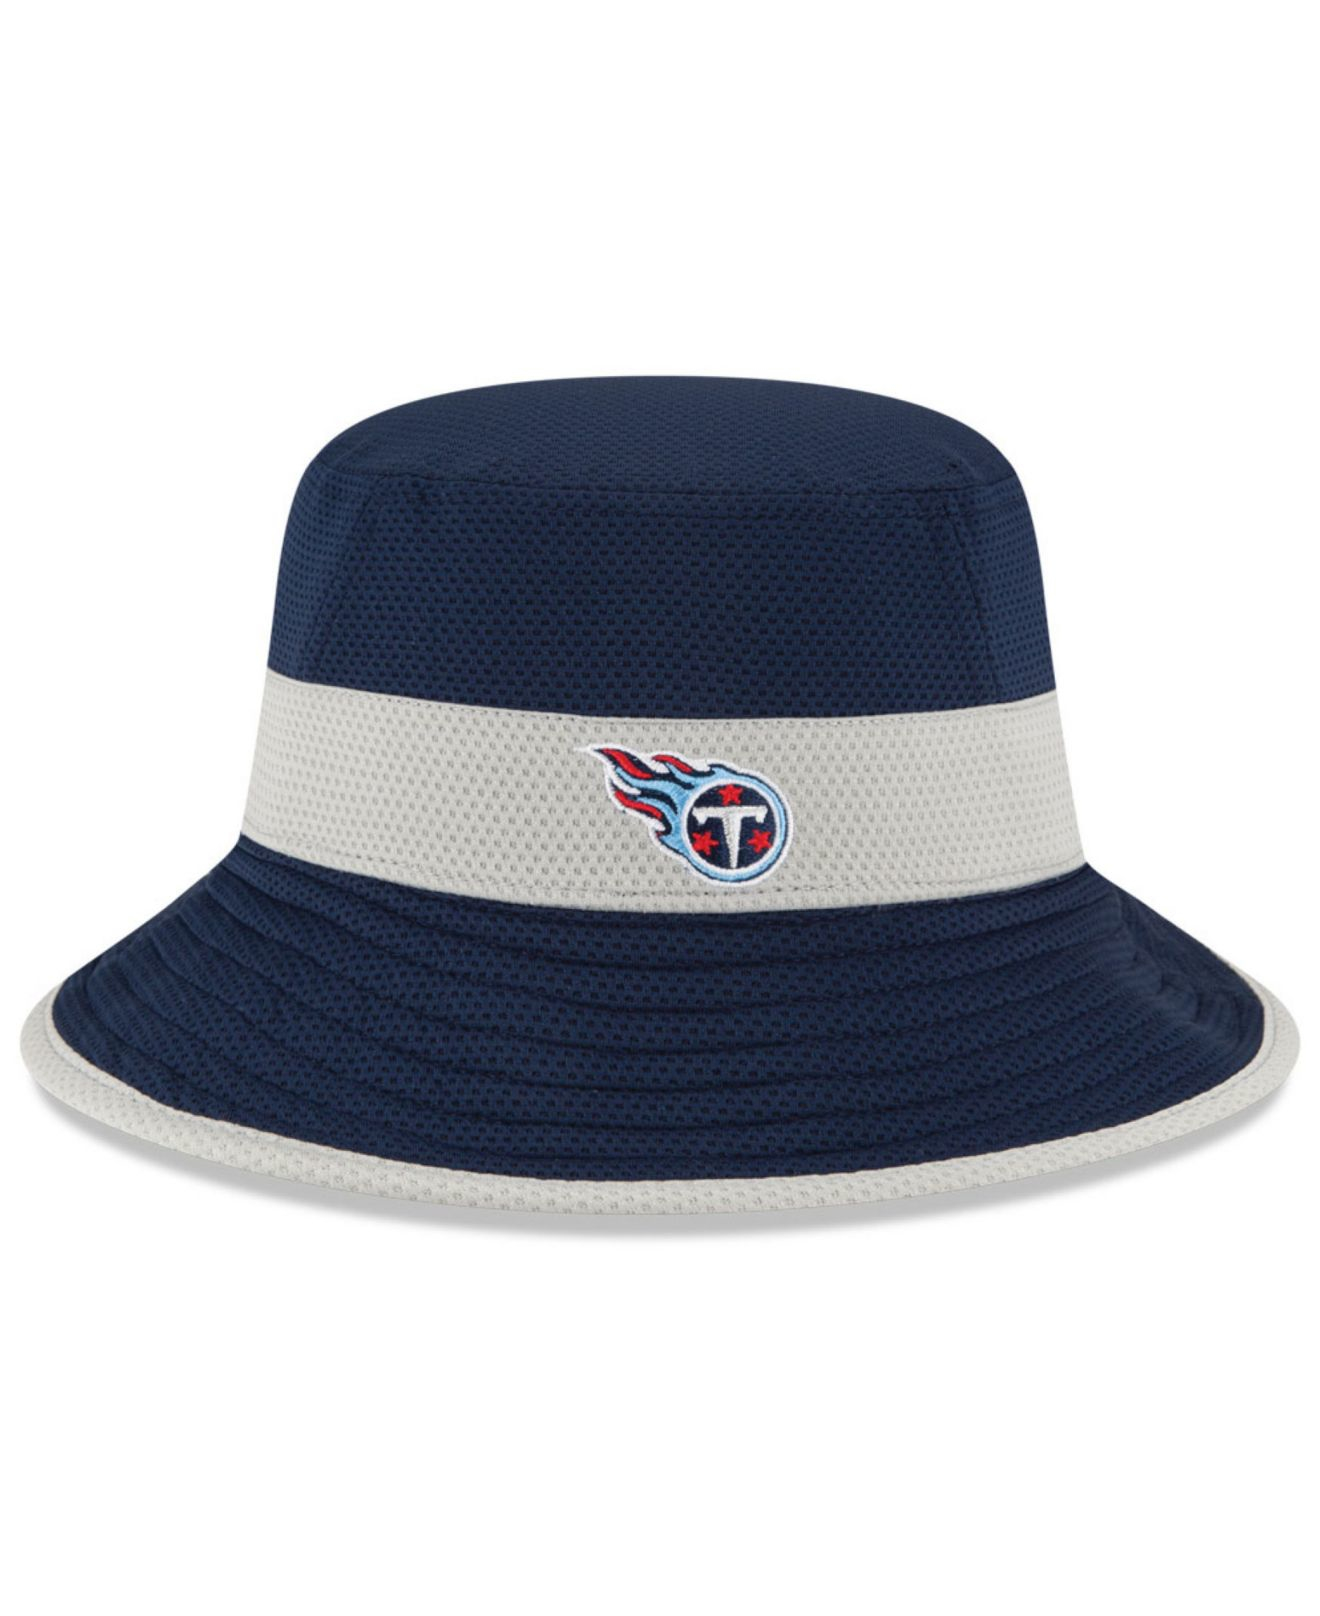 reputable site b581a 04a23 KTZ Tennessee Titans Training Camp Reverse Bucket Hat in Blue for ...